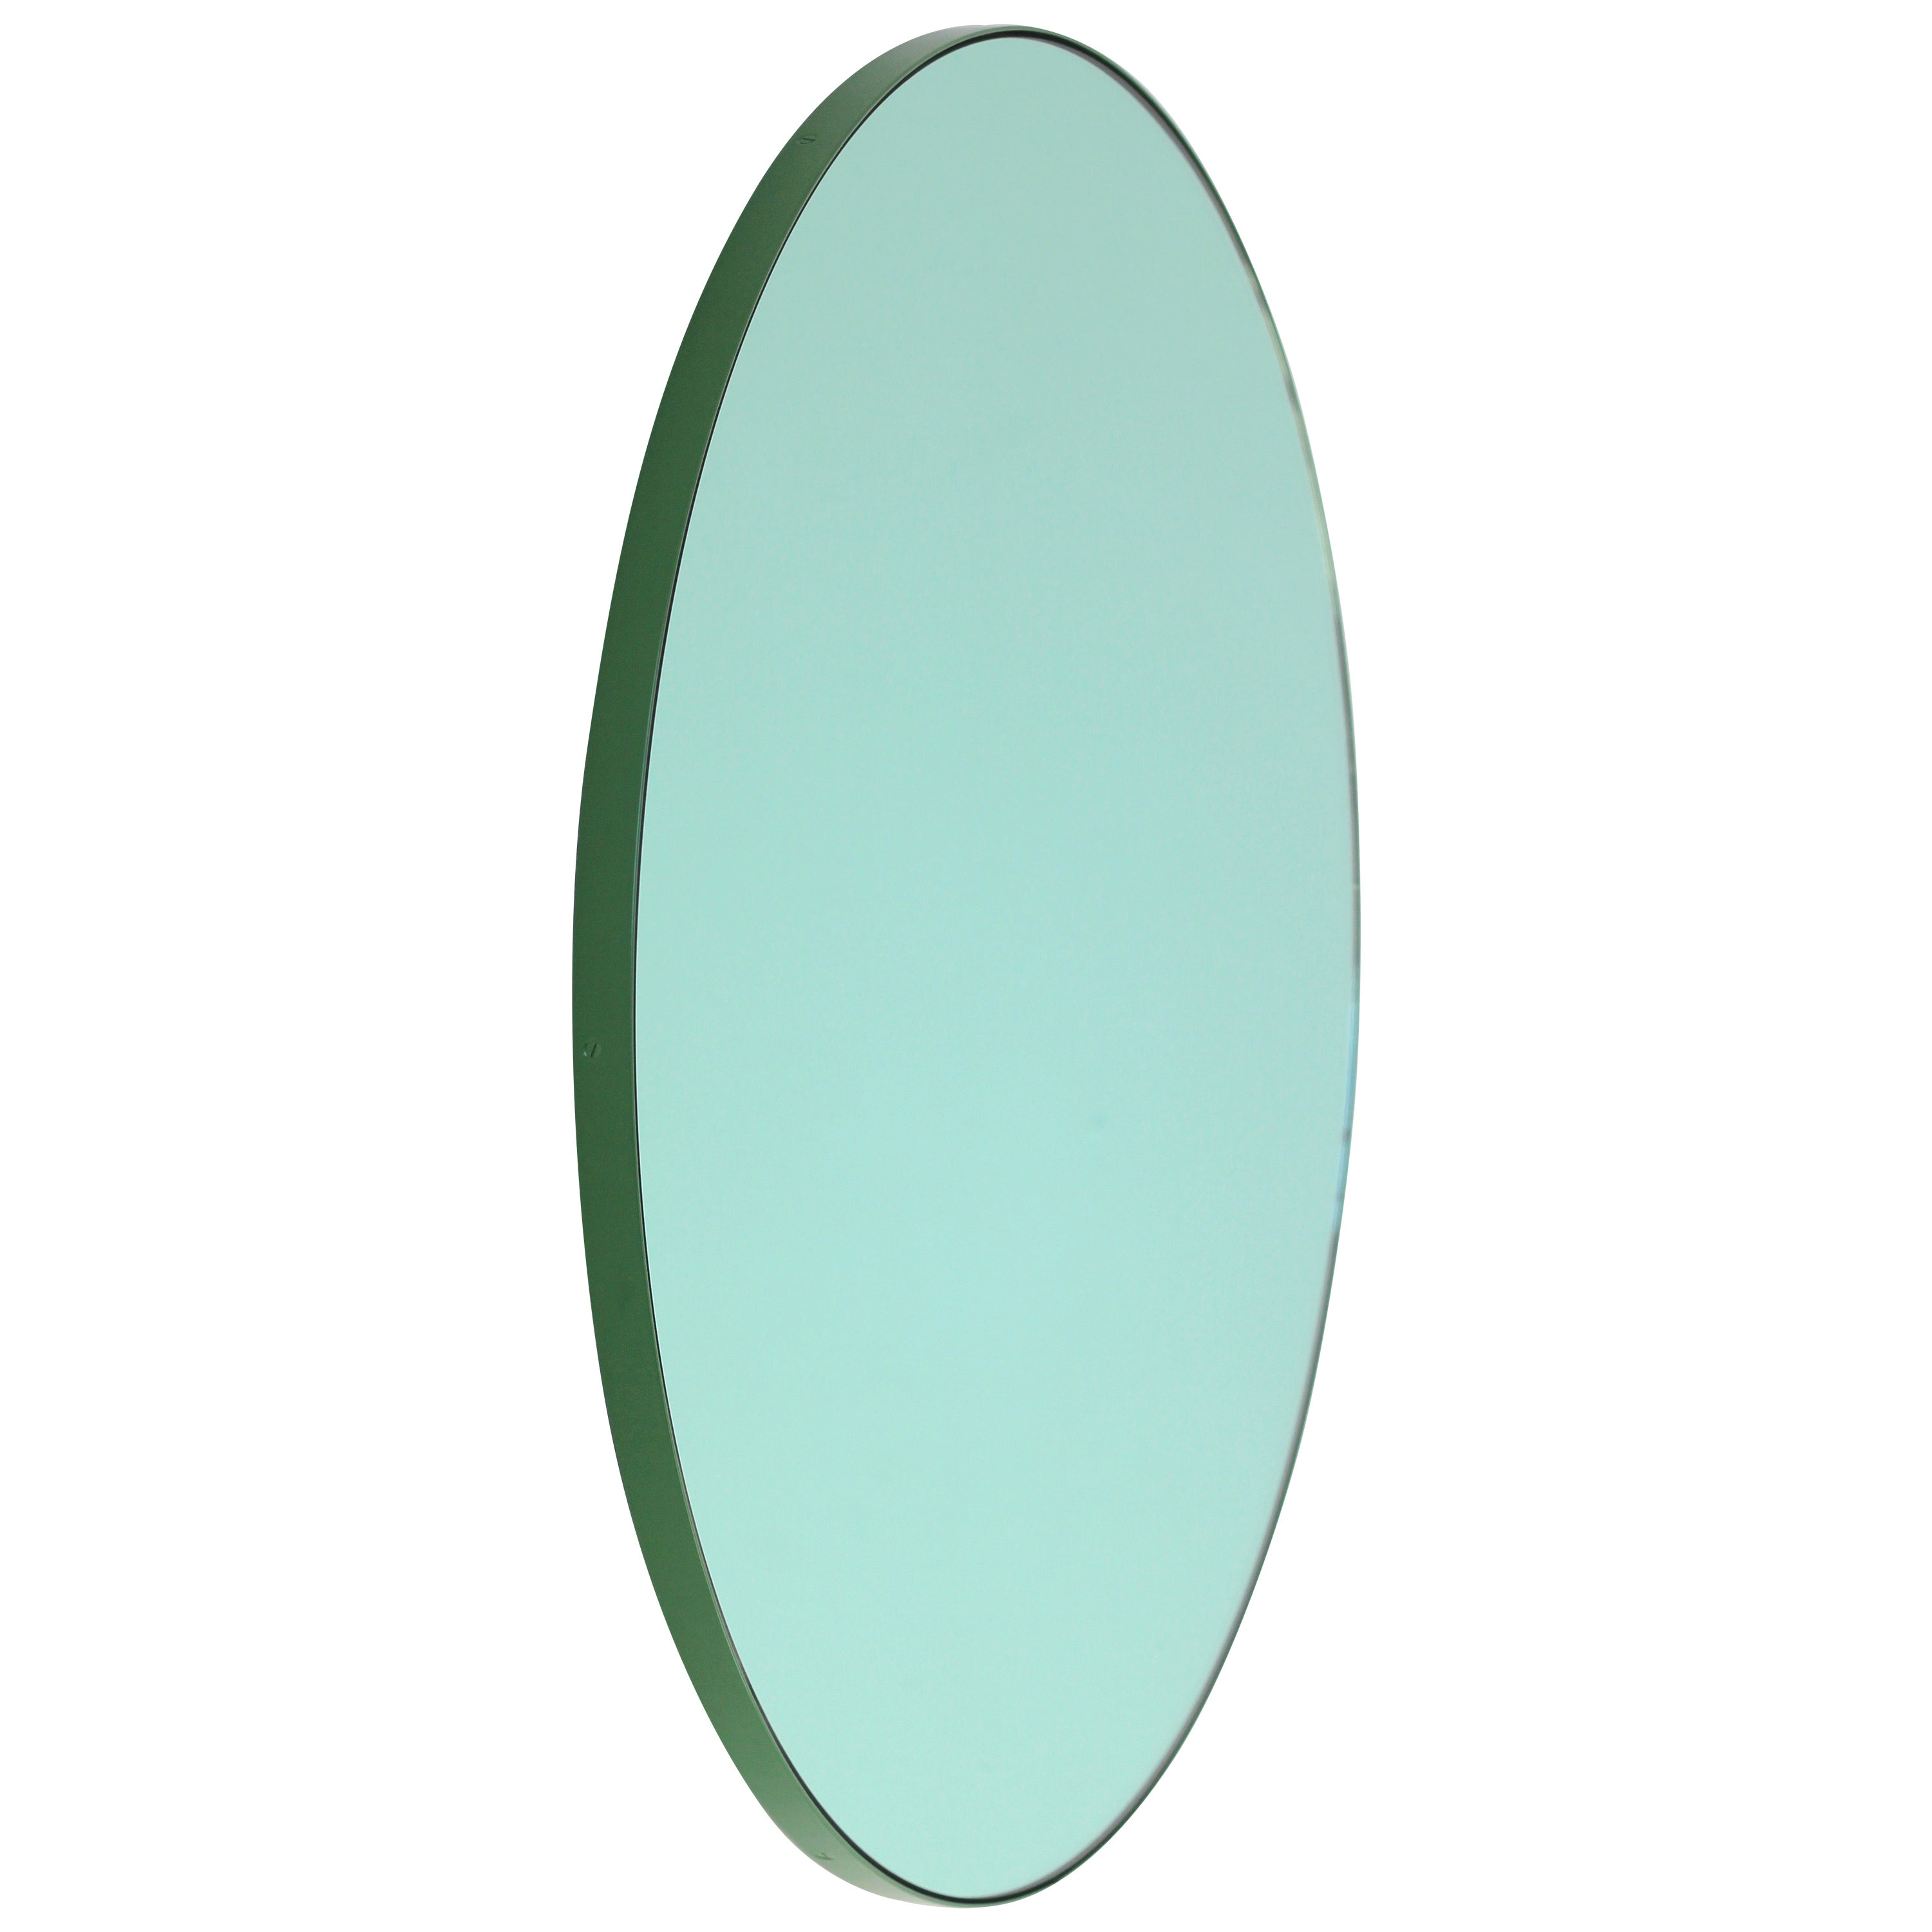 Orbis Green Tinted Modern Round Mirror with Green Frame, Small